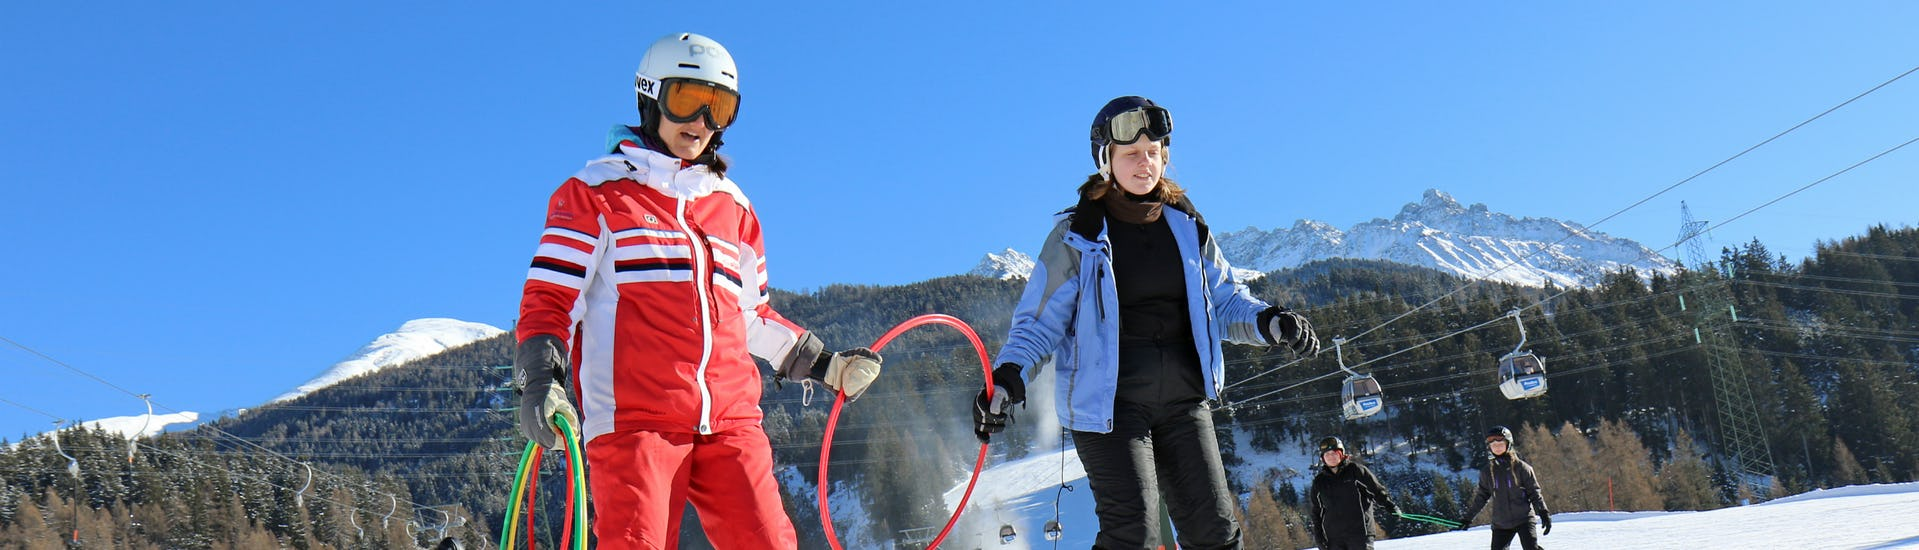 Ski Instructor Private for Adults in Samnaun/Ischgl